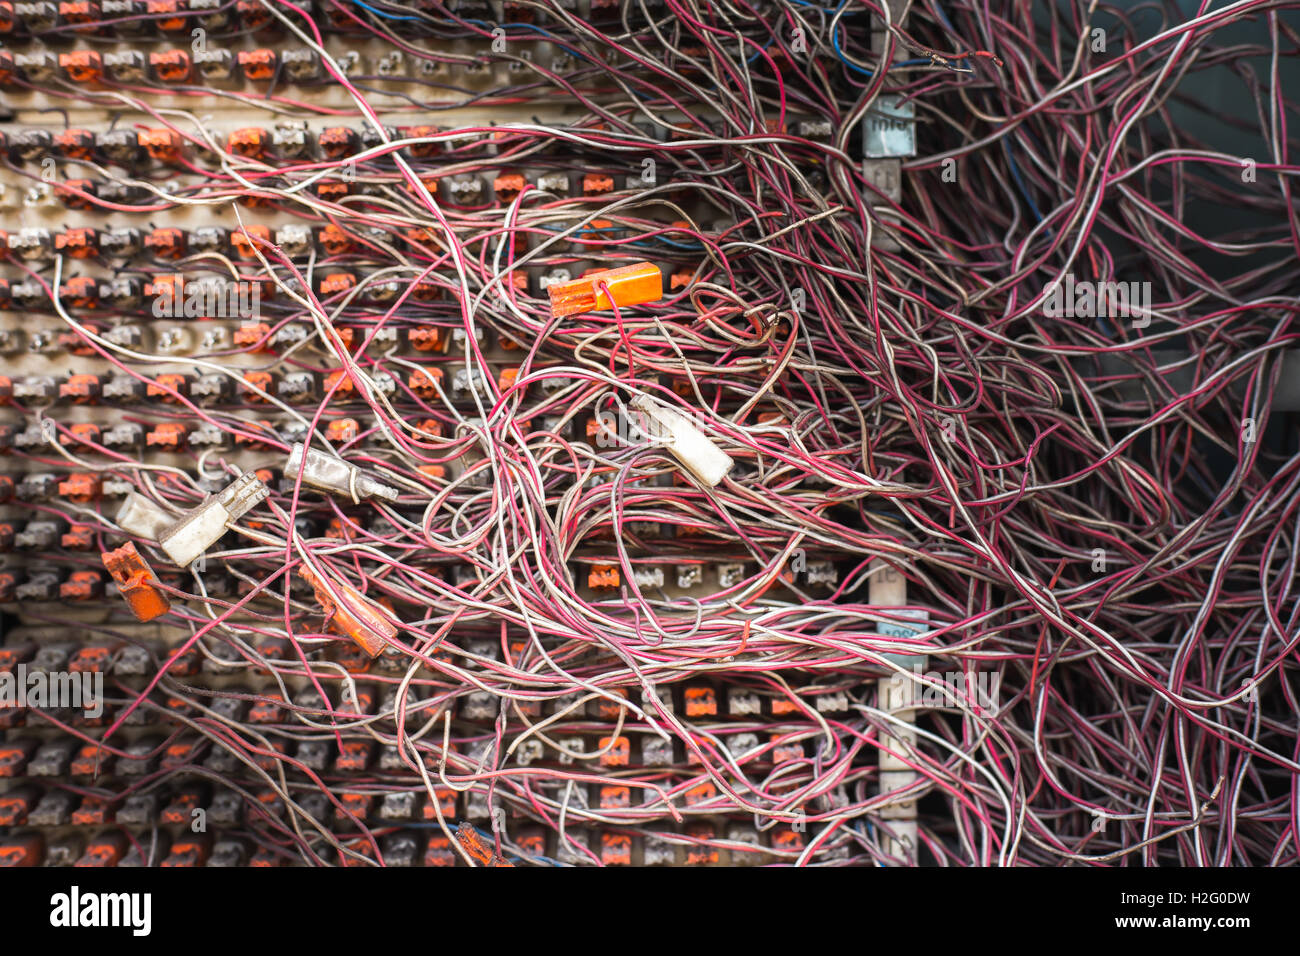 Switchboard Panel With Messy Cables Connectionsthe Pabx Stock Photo Network Wiring